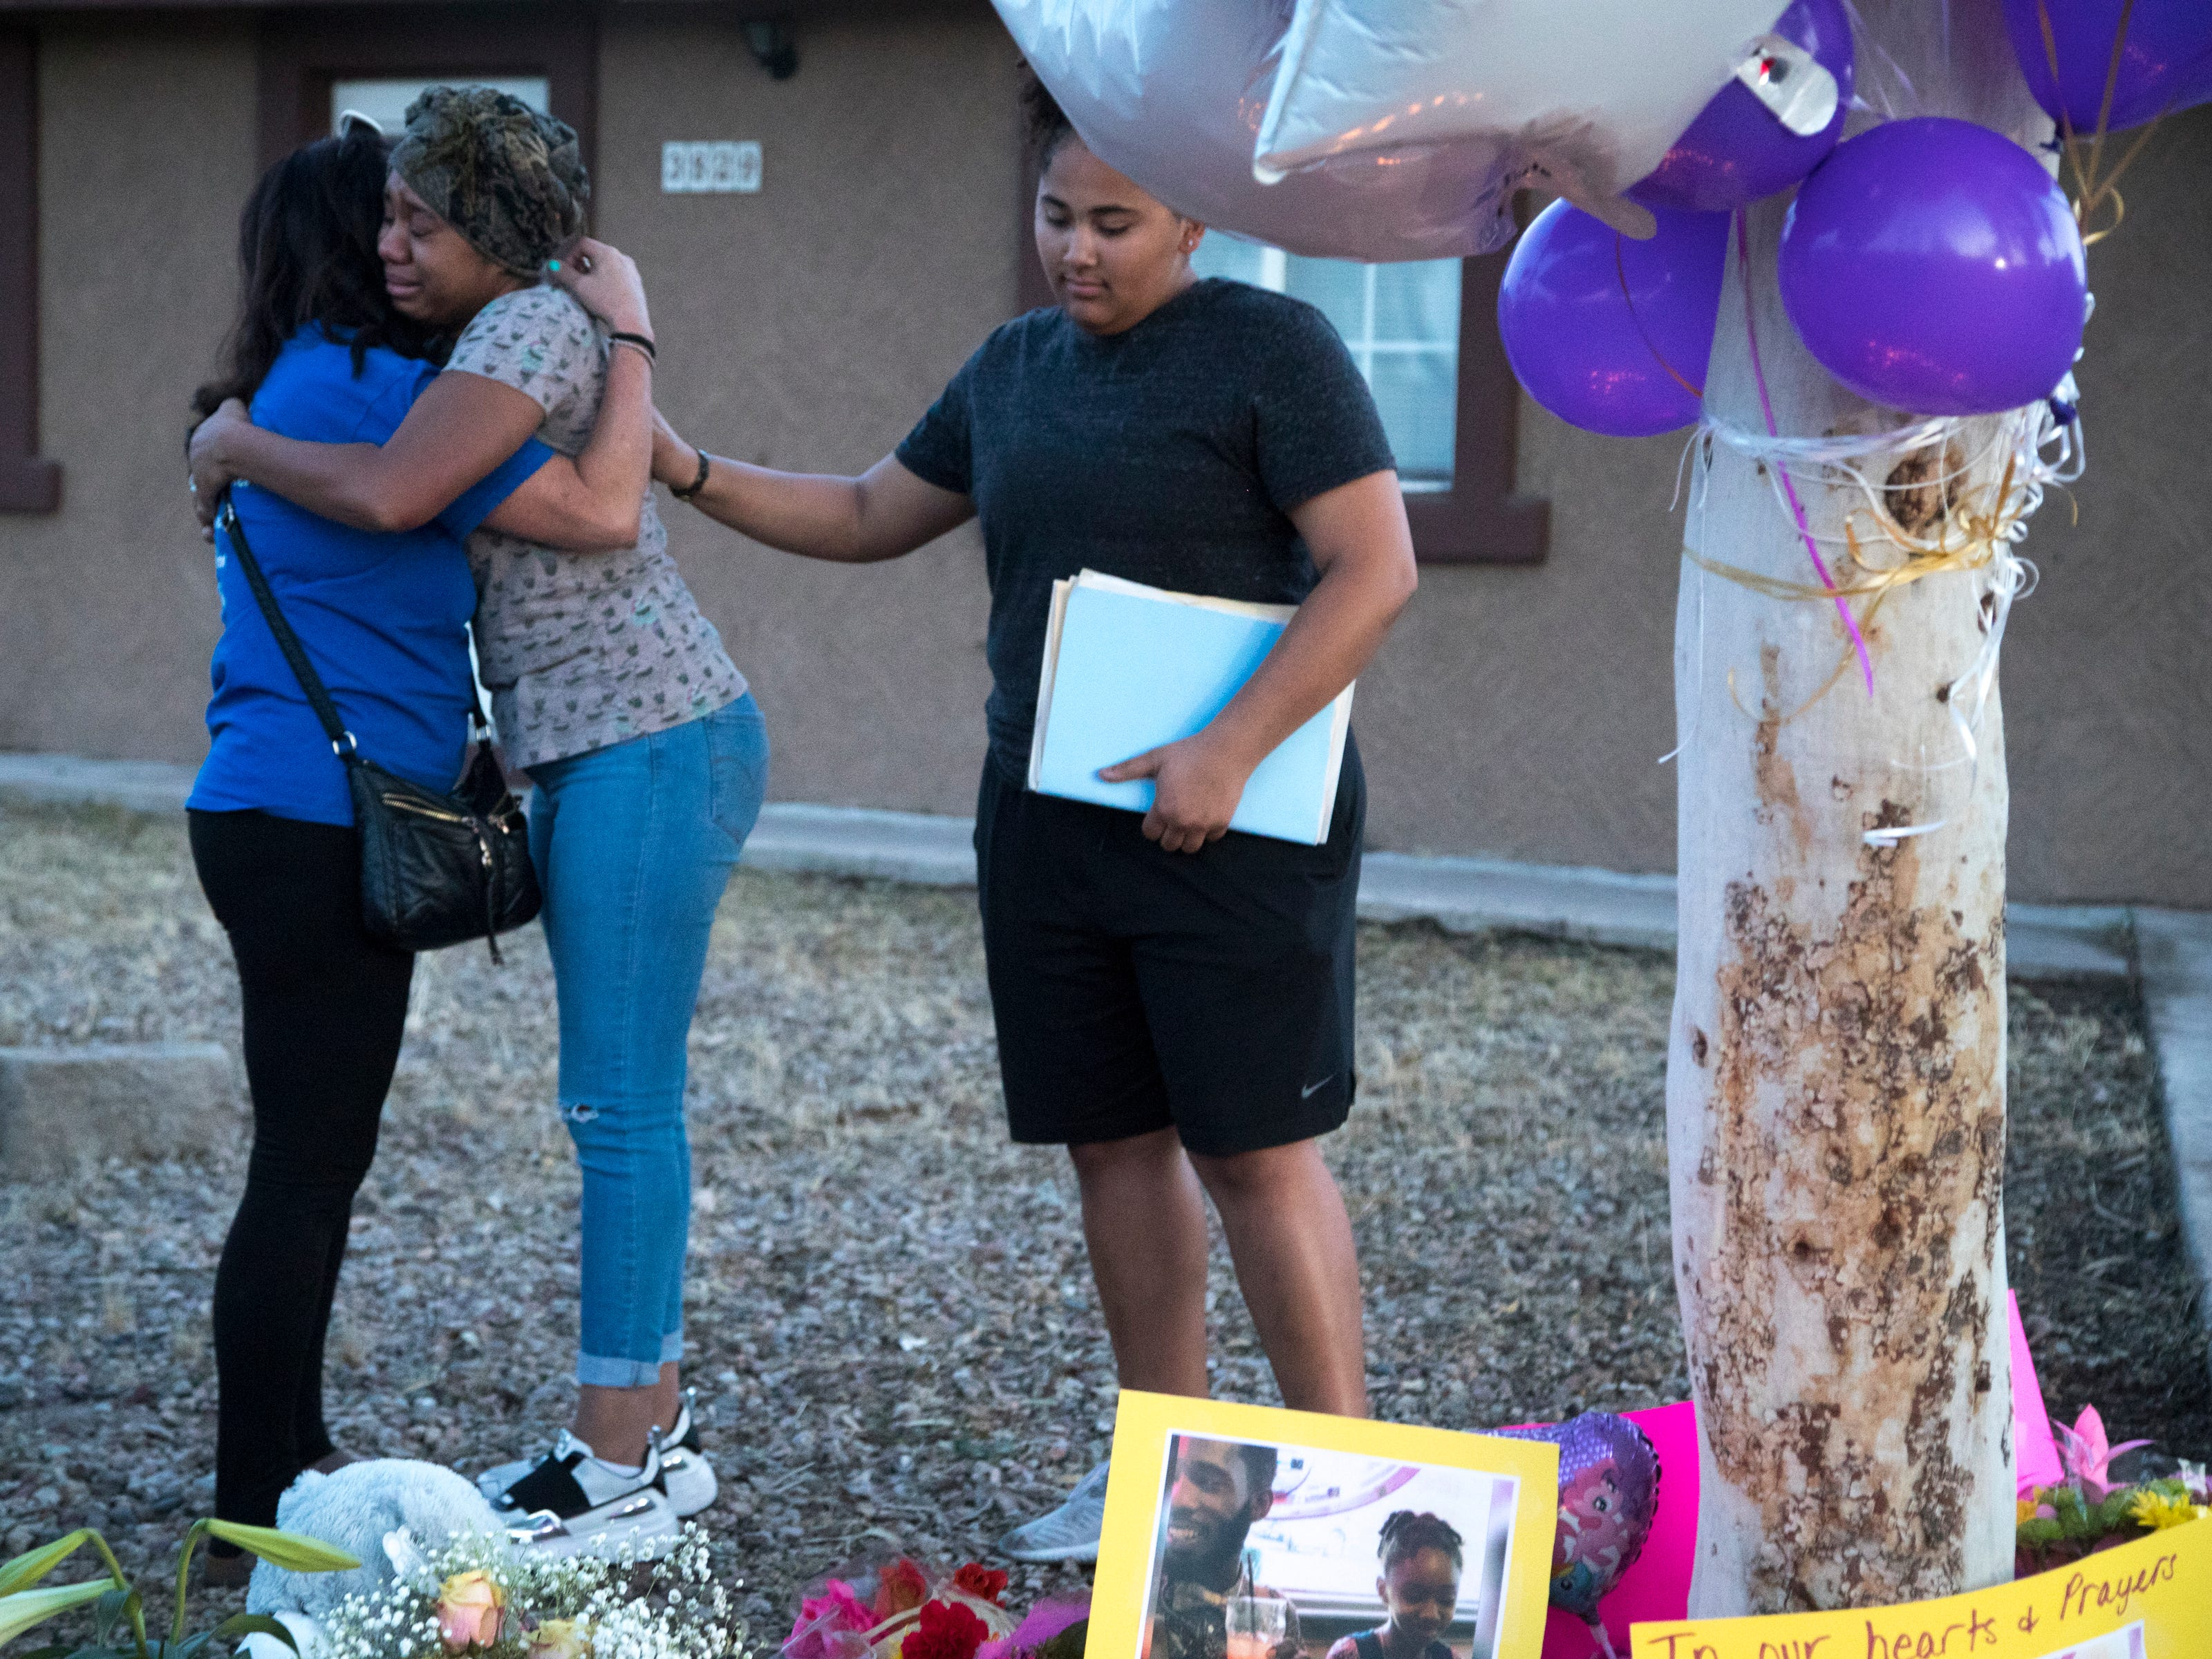 Taniesha Brown (center, Summer's mom) is hugged by Rebecka Johnson (left, Summer's 5th grade teacher) during a vigil for Summer Bell Brown on April 5, 2019. At right is Destaine Clark (family friend).